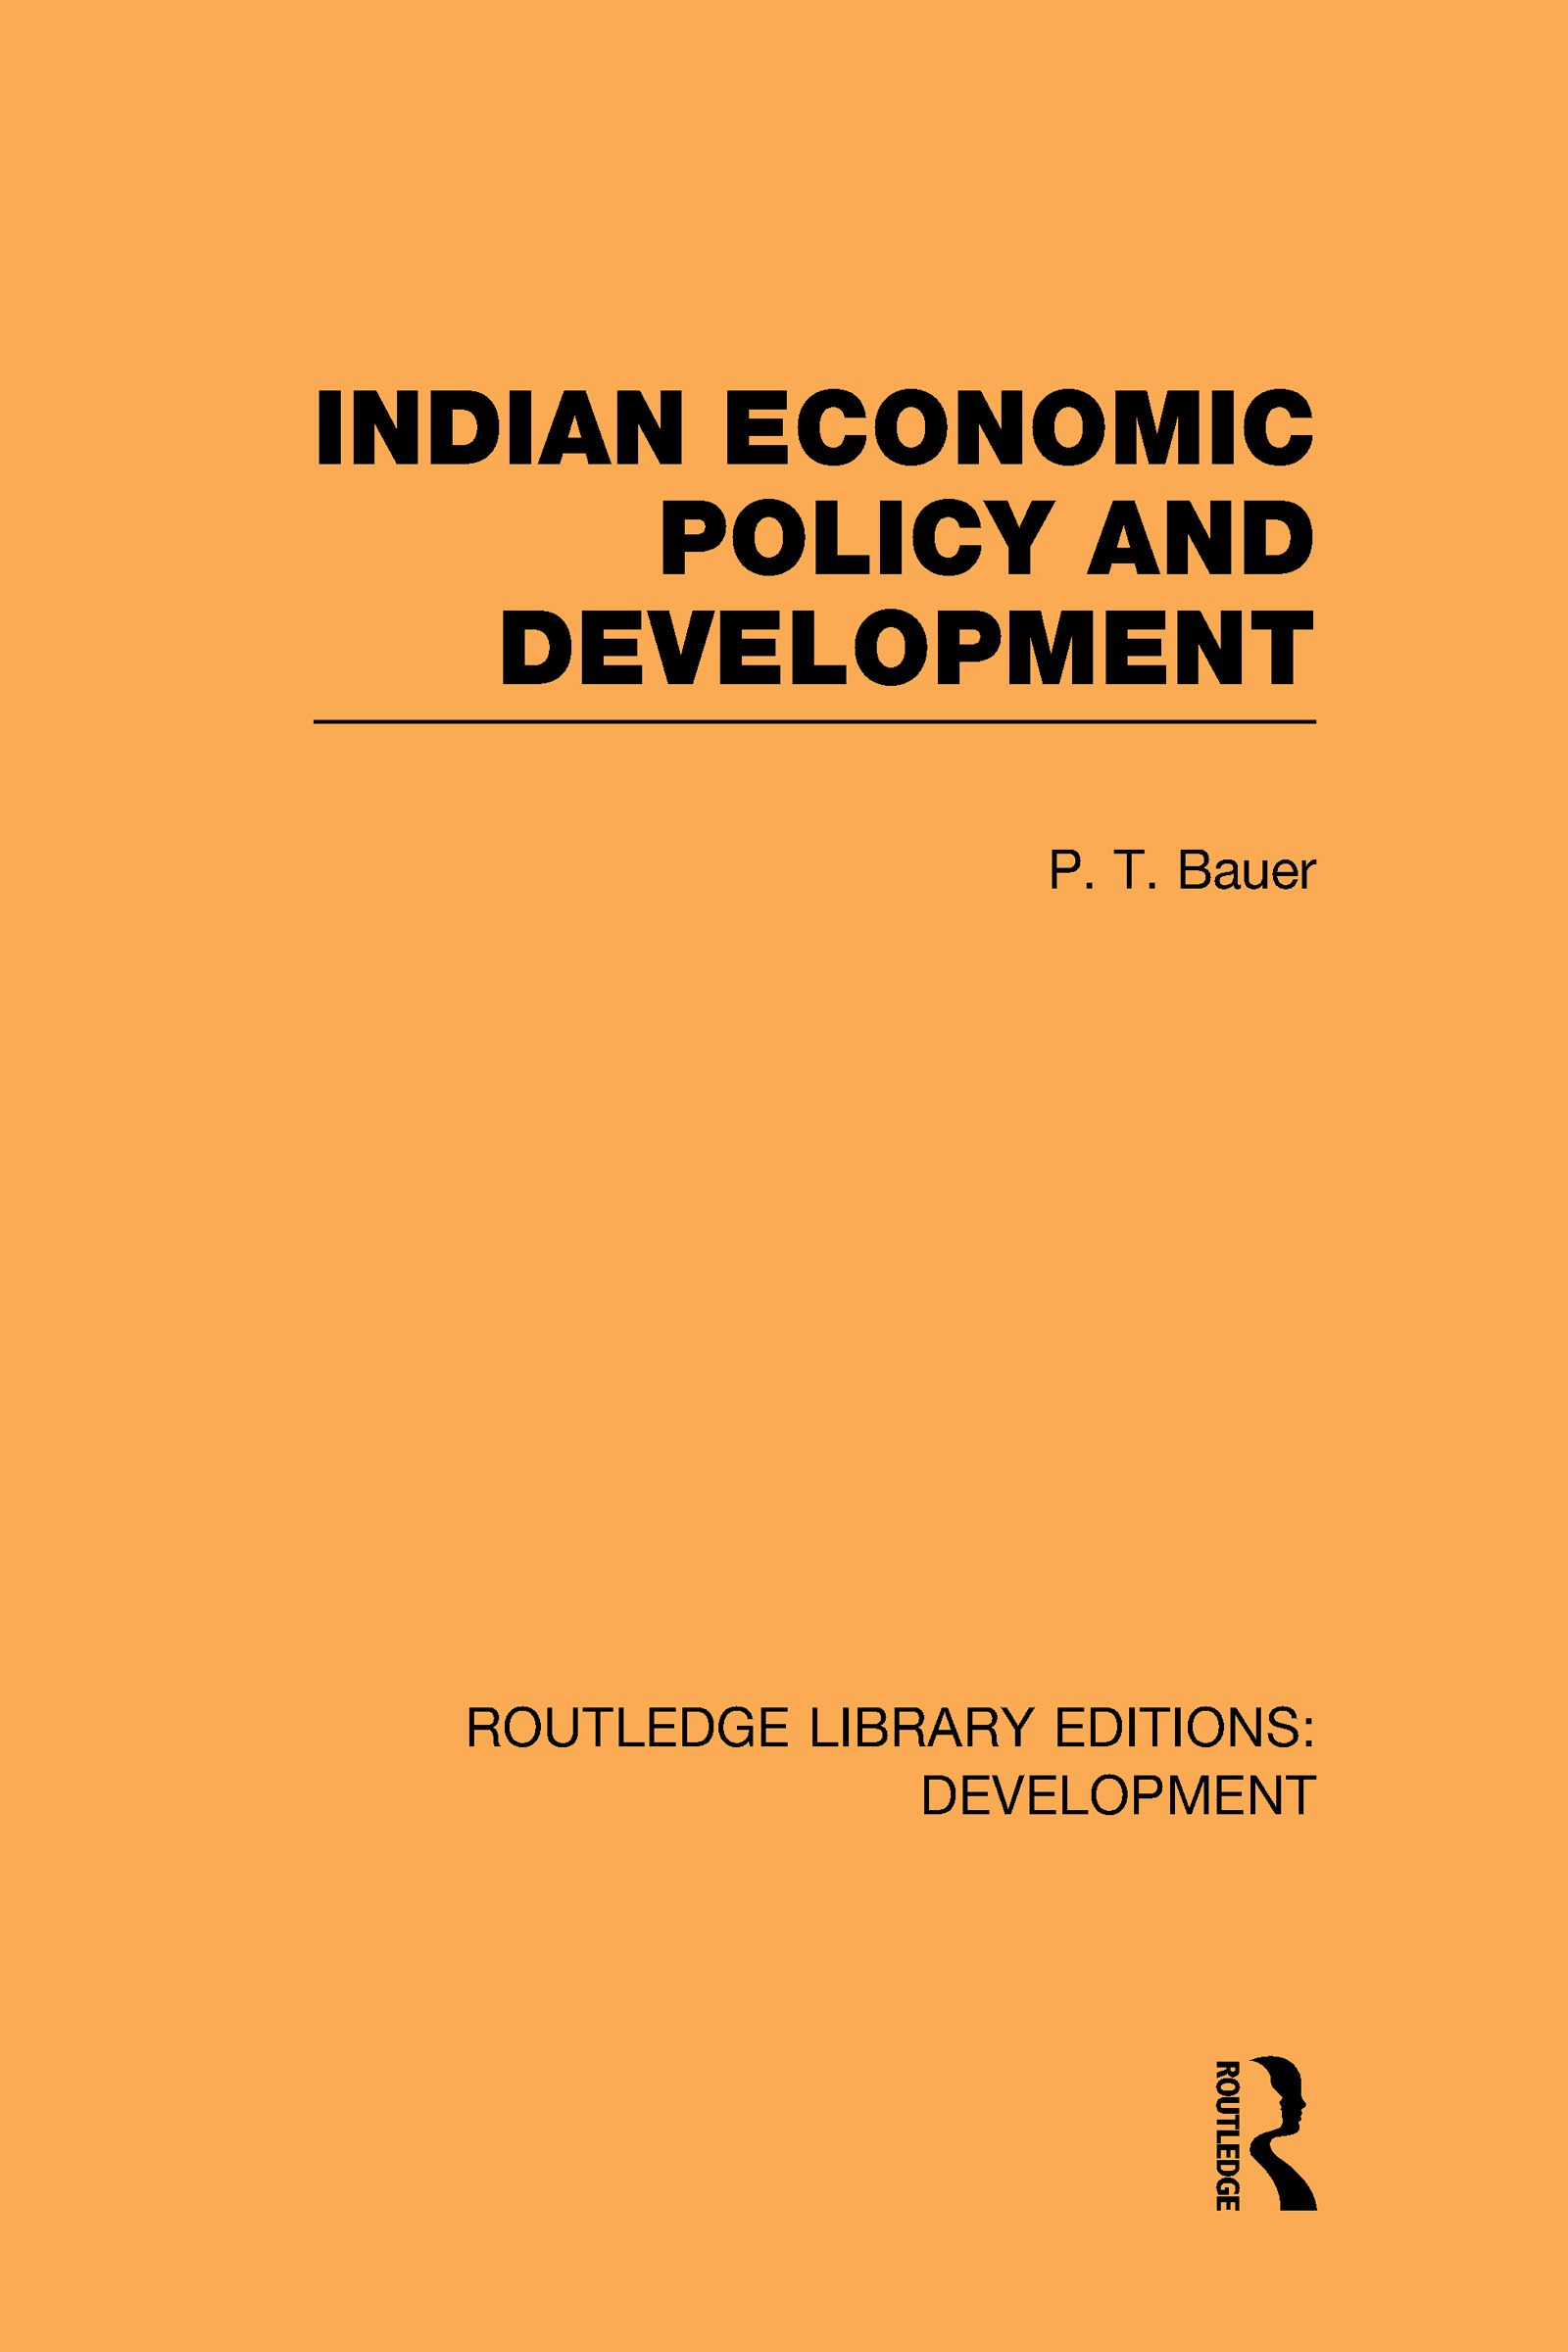 Indian Economic Policy and Development